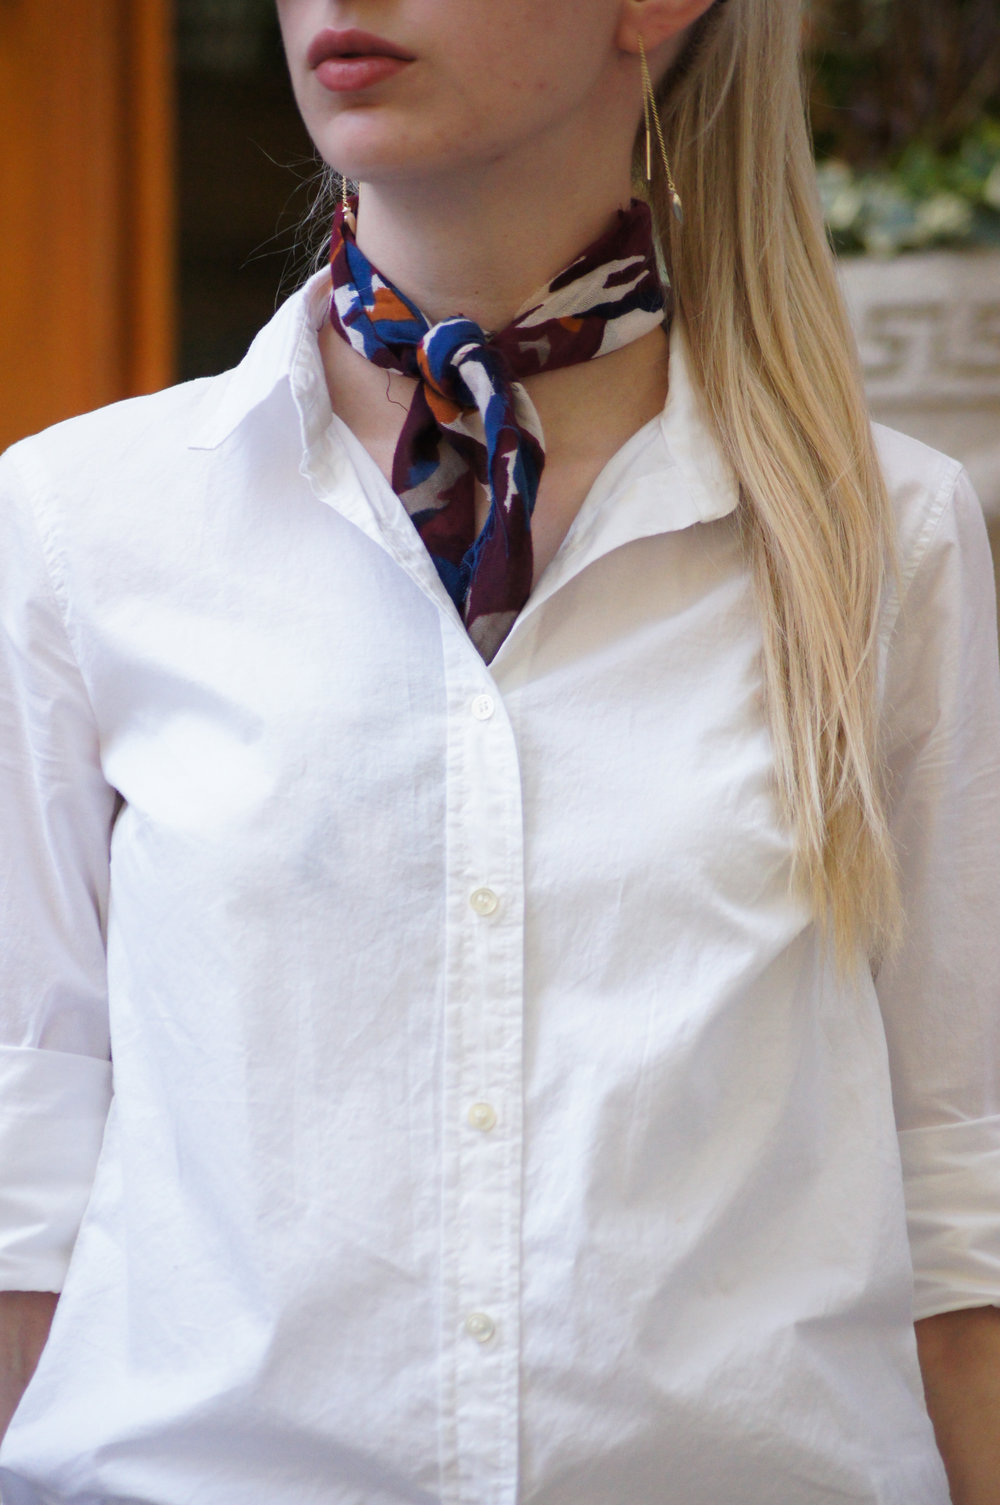 J.Crew white perfect shirt and wilderness knot tied neck scarf